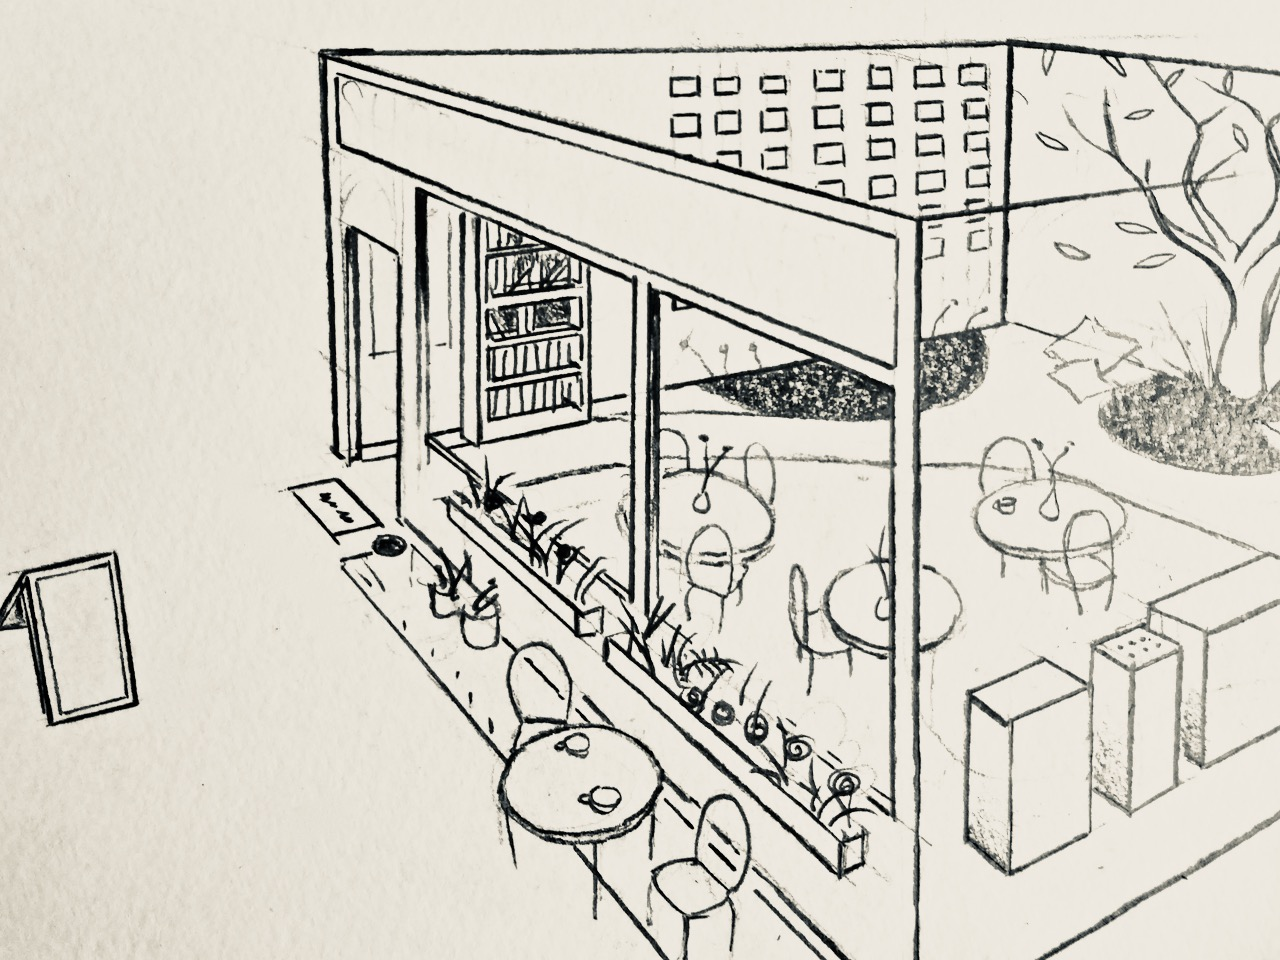 Black pen drawing on white paper showing the design of a shop front. There is cafe seating, flowers in window beds, a bookcase and a tree inside the shop.